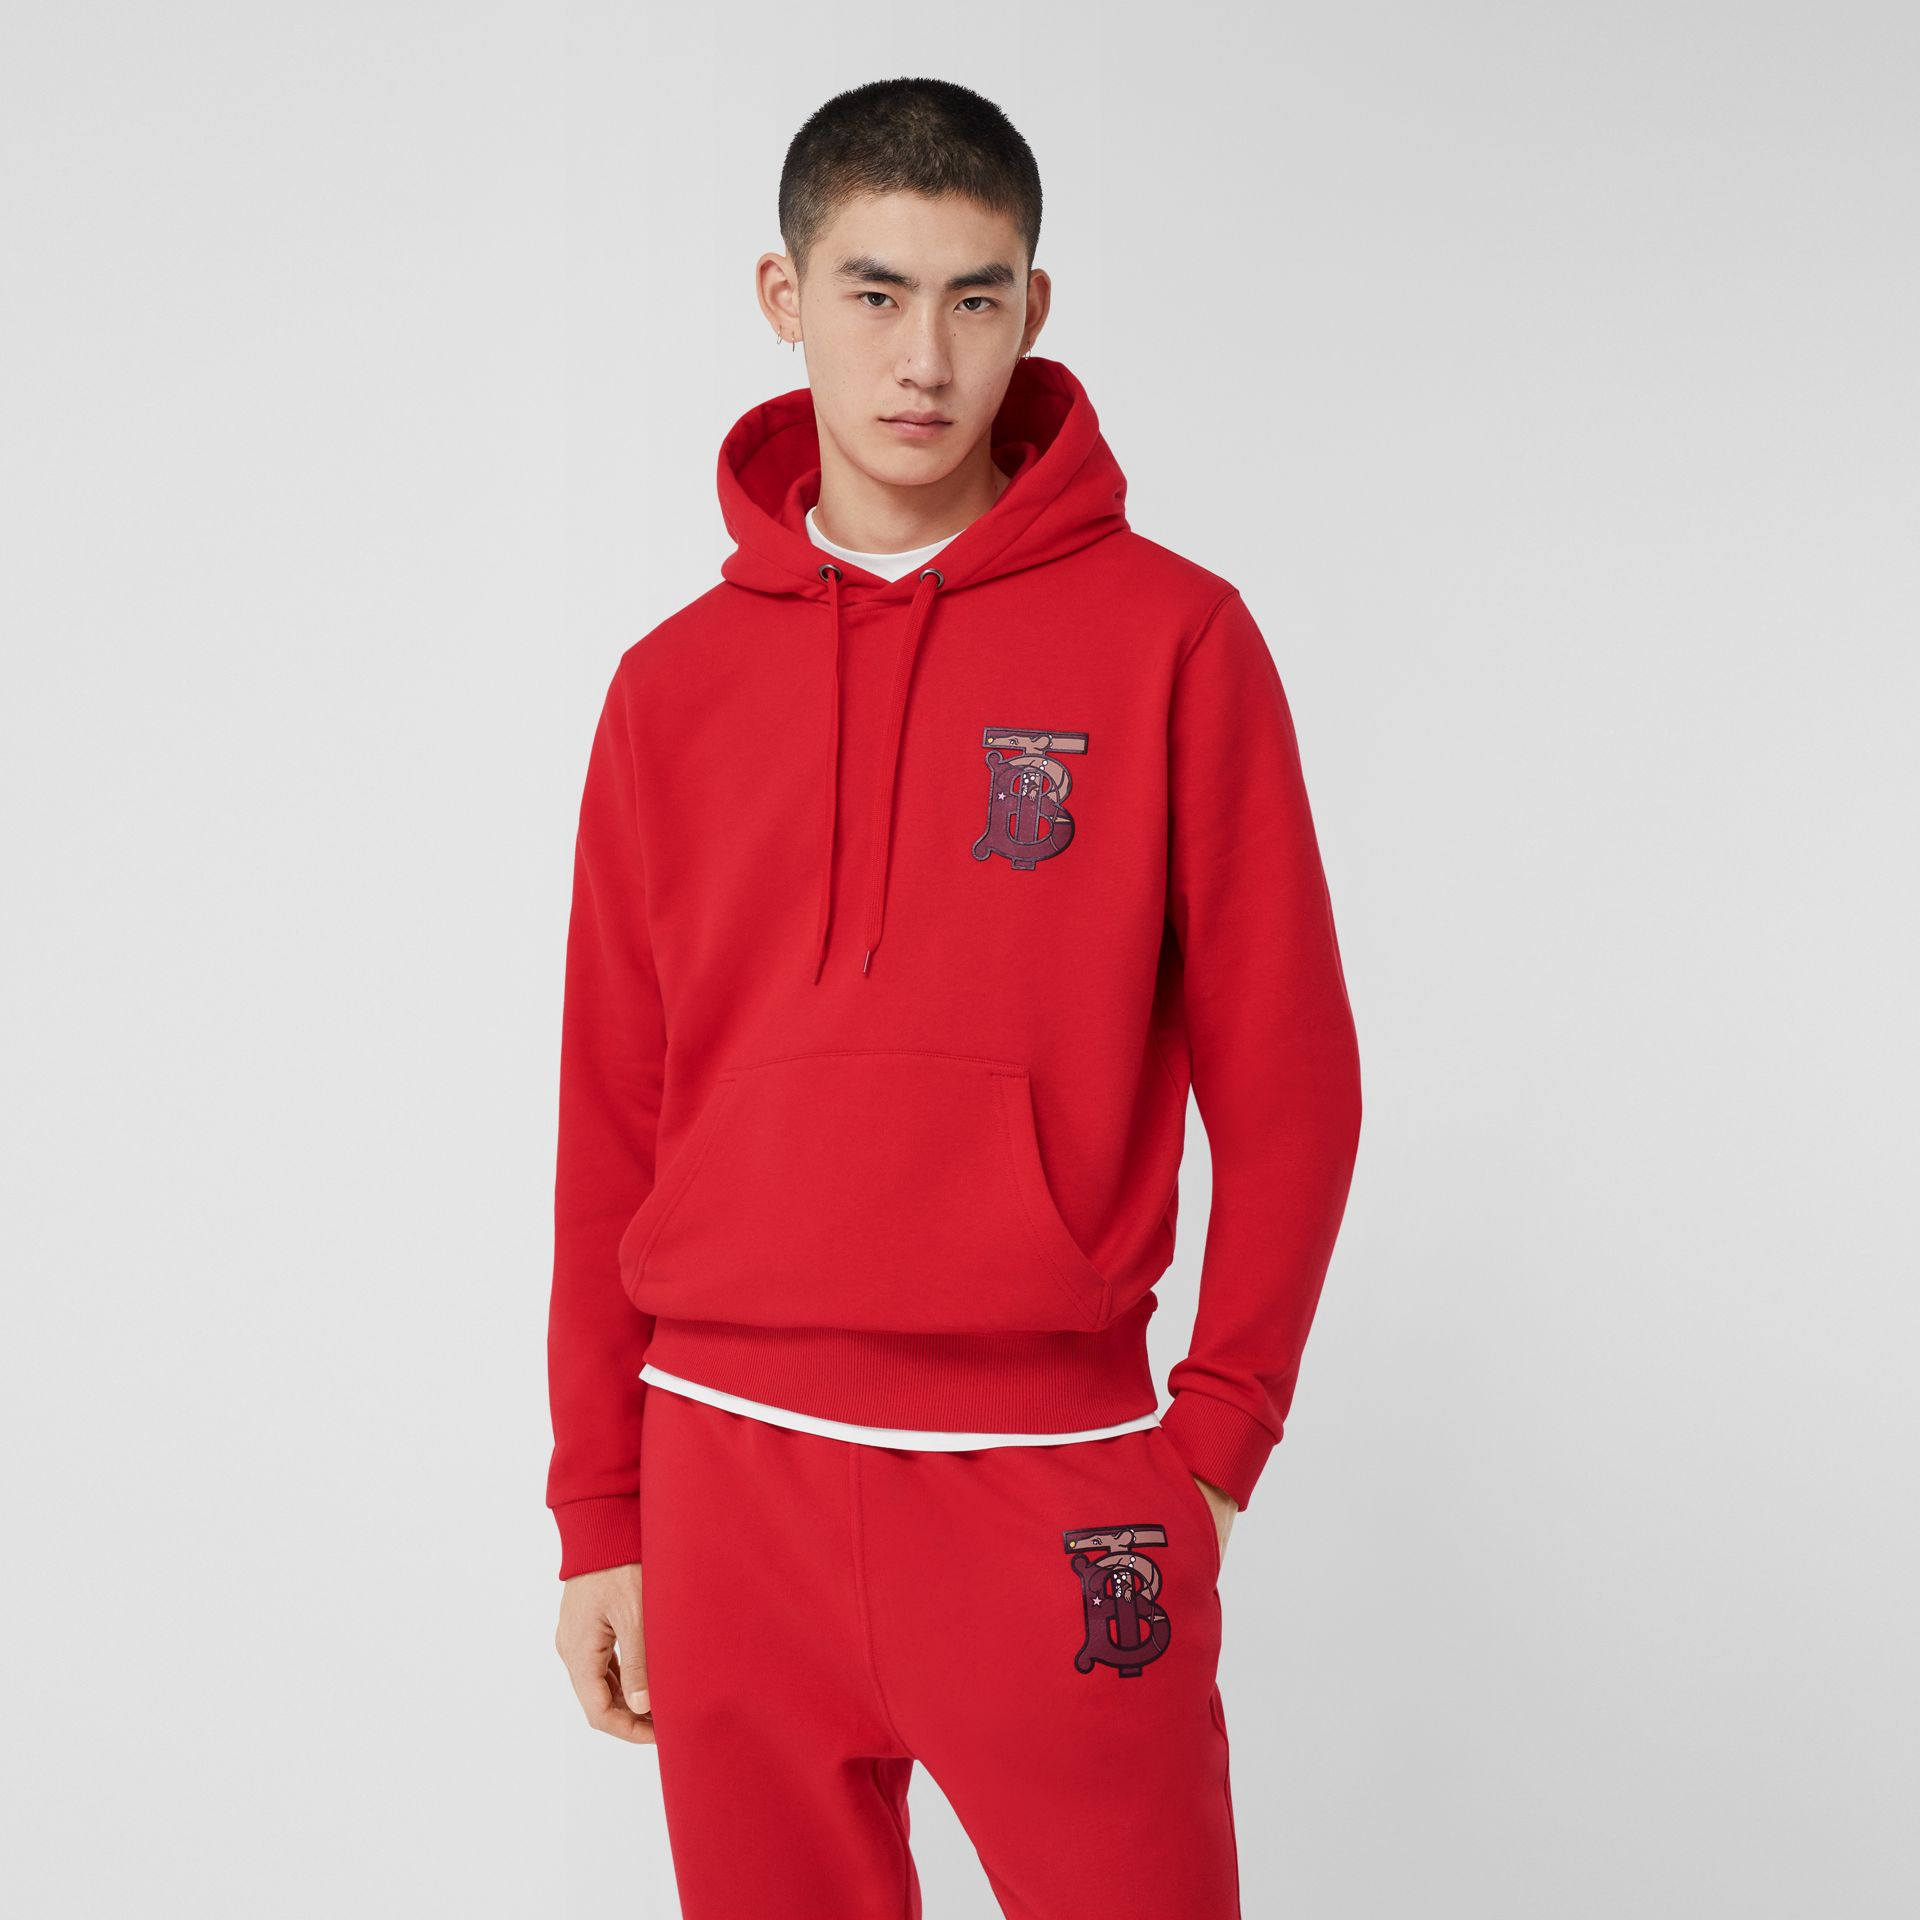 Monogram Motif Cotton Oversized Hoodie in Bright Red - Men | Burberry United Kingdom - gallery image 3